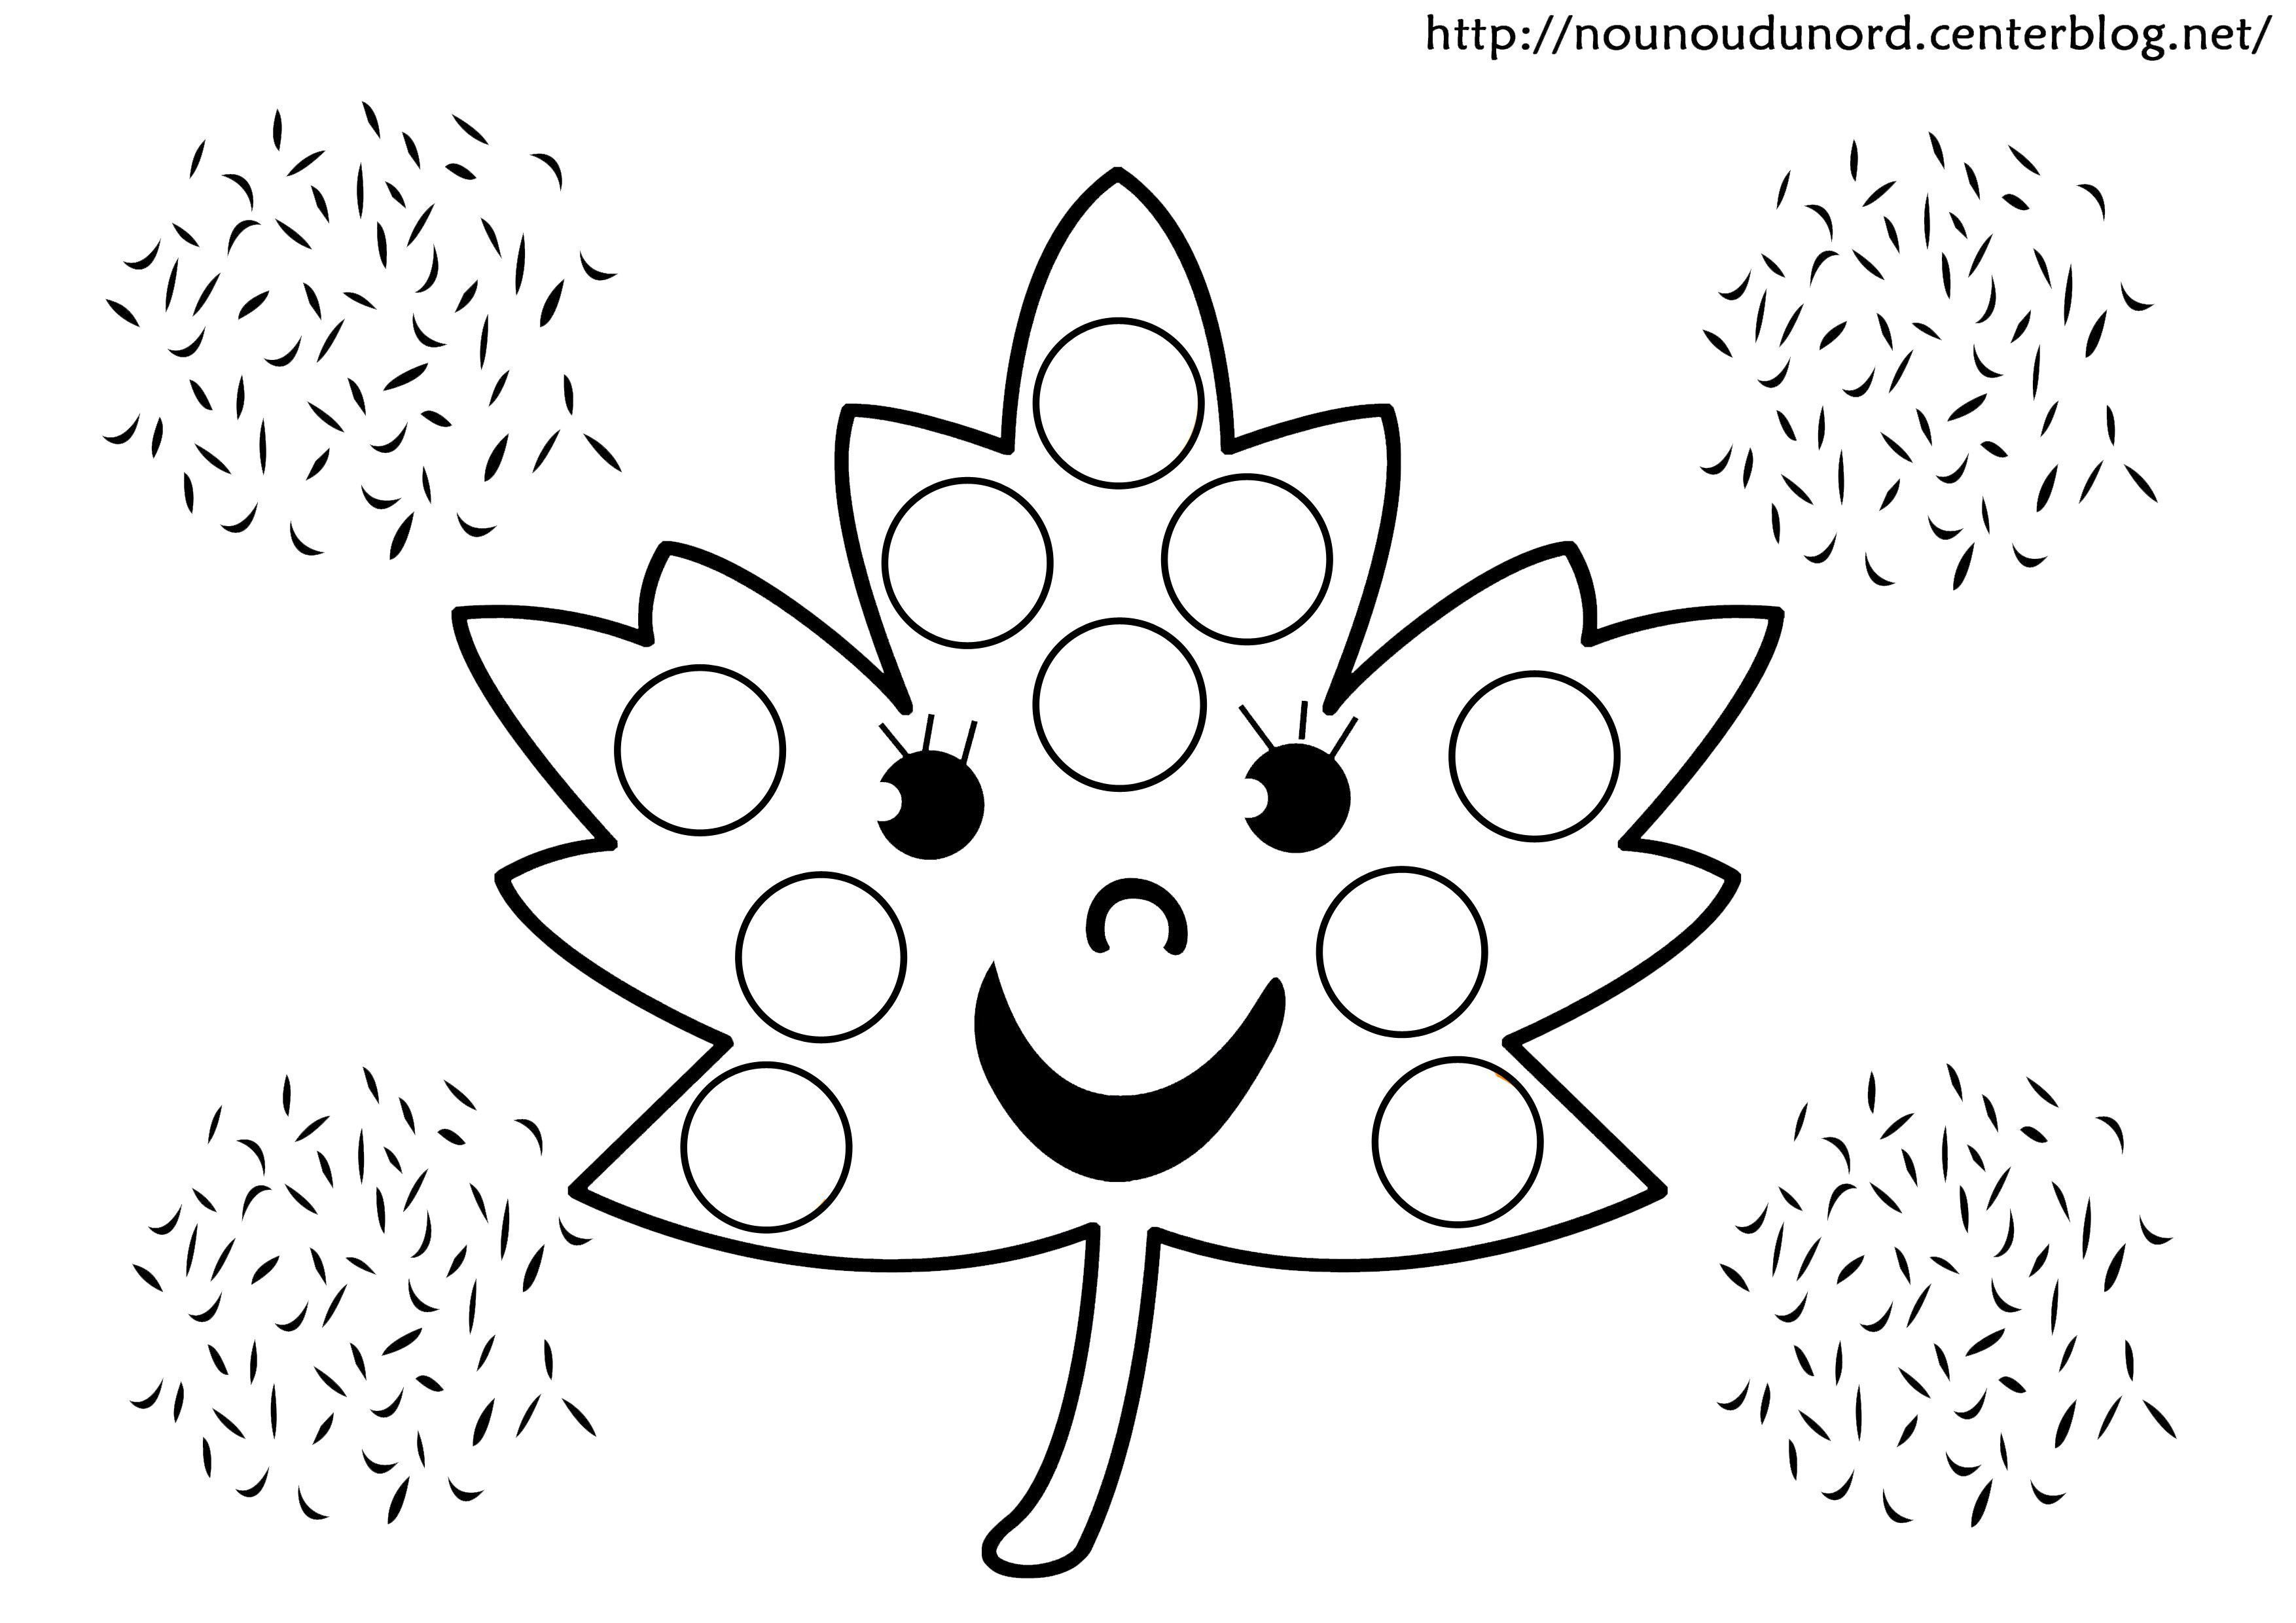 Coloriage feuille gommette - Coloriage feuille automne ...